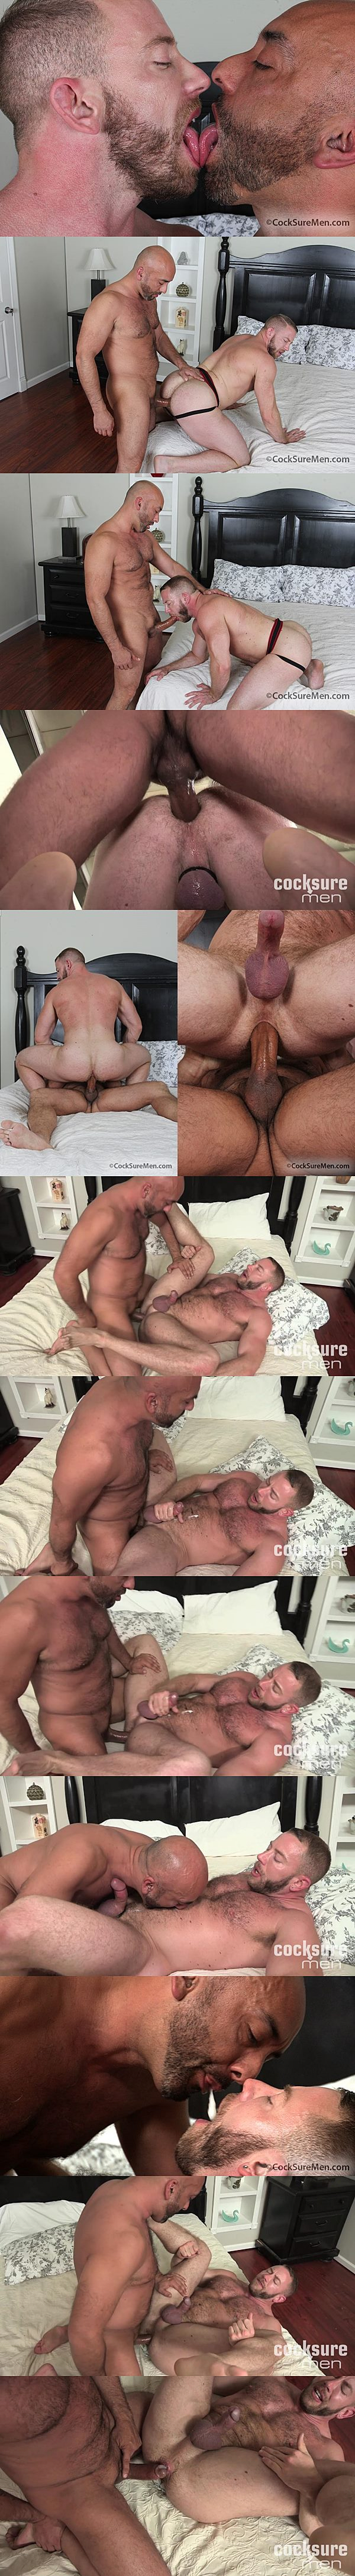 Real life couple Brian Davilla barebacks and creampies Shay Michaels at Cocksuremen 02